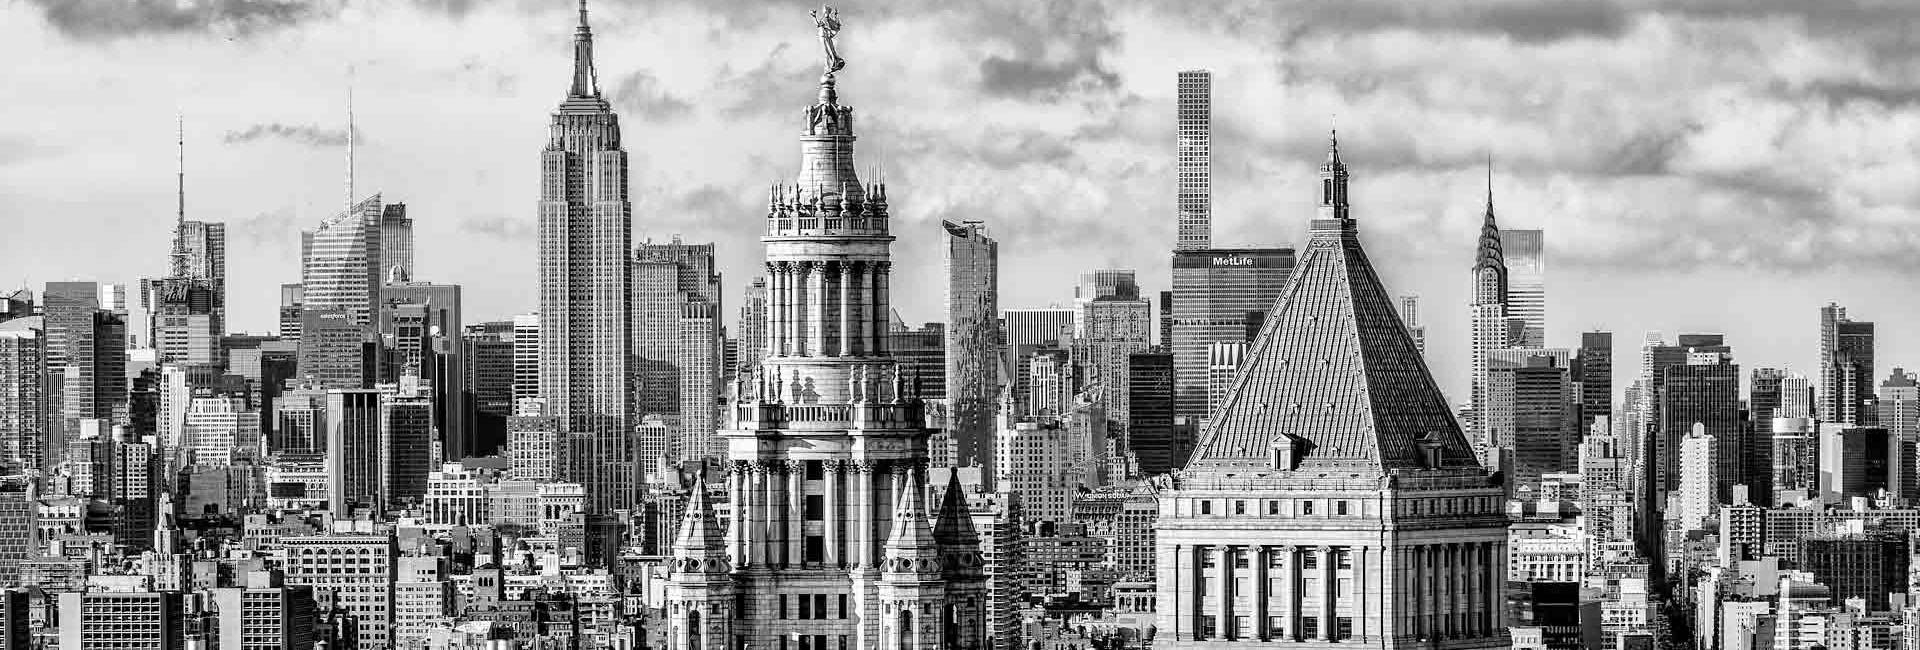 Black and white cityscapes – limited edition large-format prints by fine art photographer Andrew Prokos